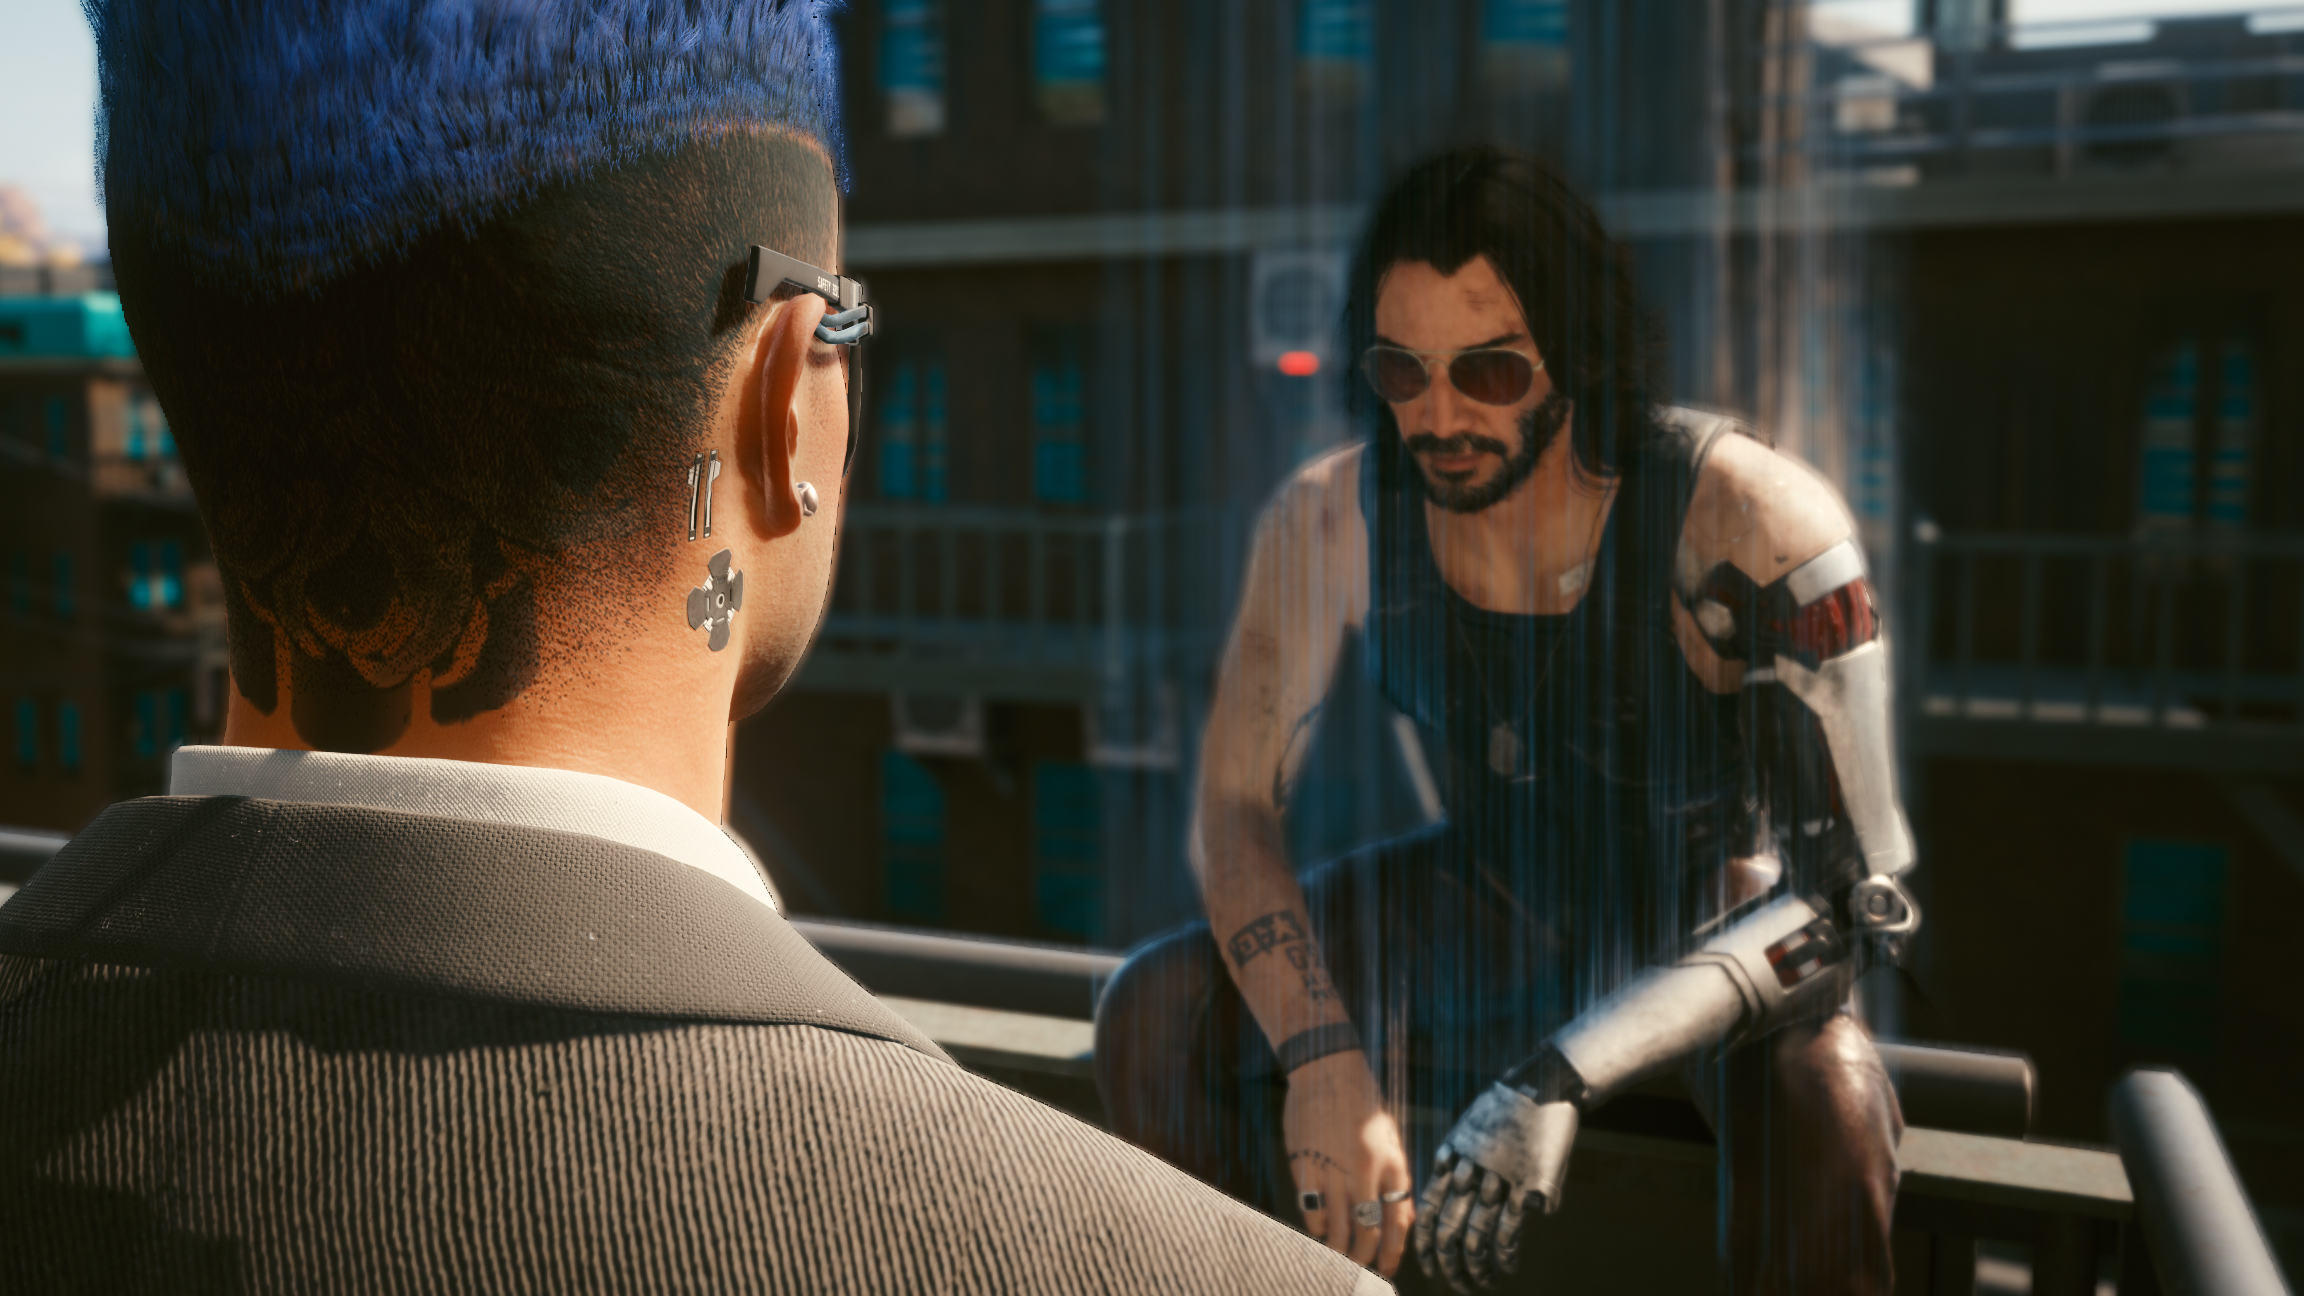 If you were waiting for Cyberpunk 2077 to be fixed before playing it… keep waiting